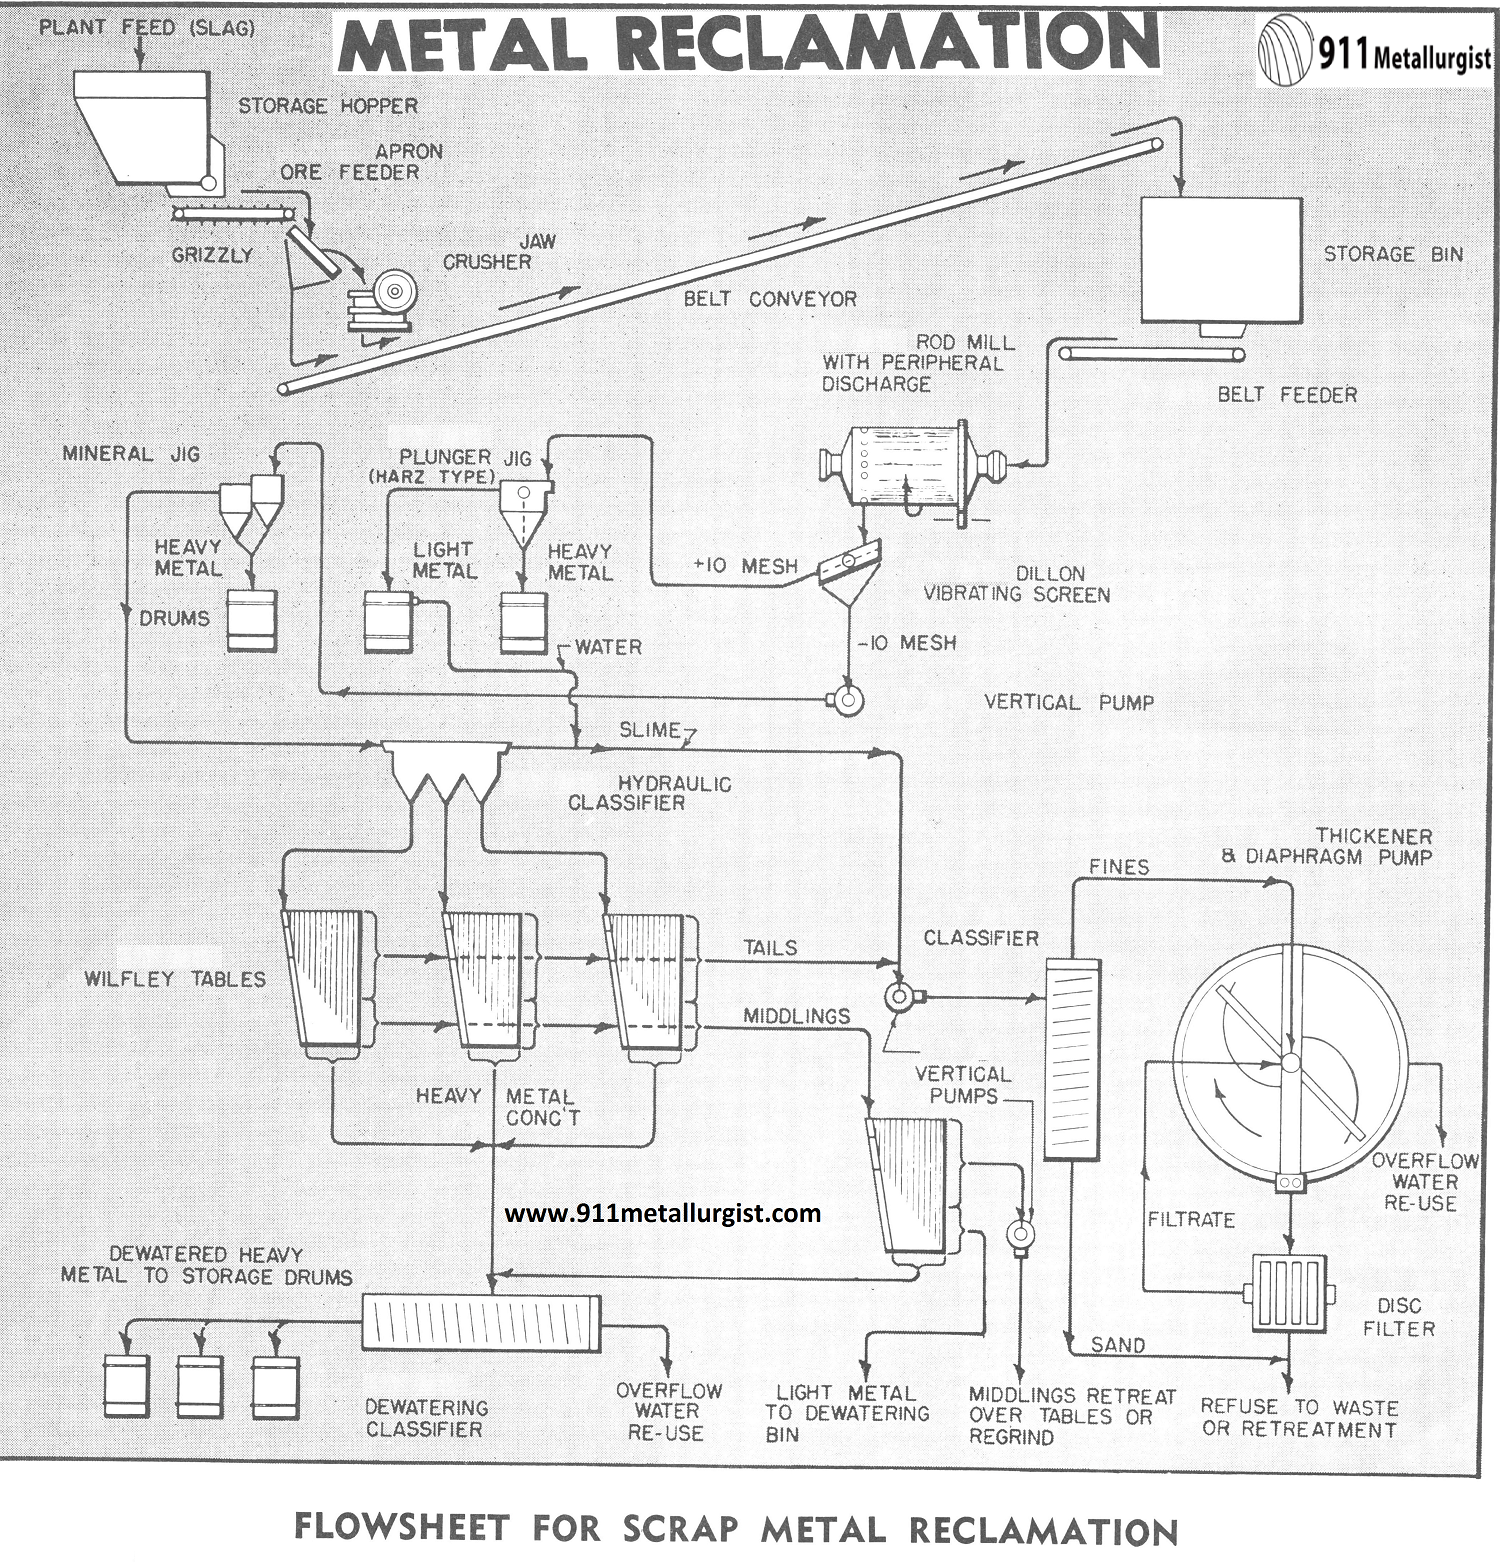 Flowsheet for Scrap Metal Reclamation